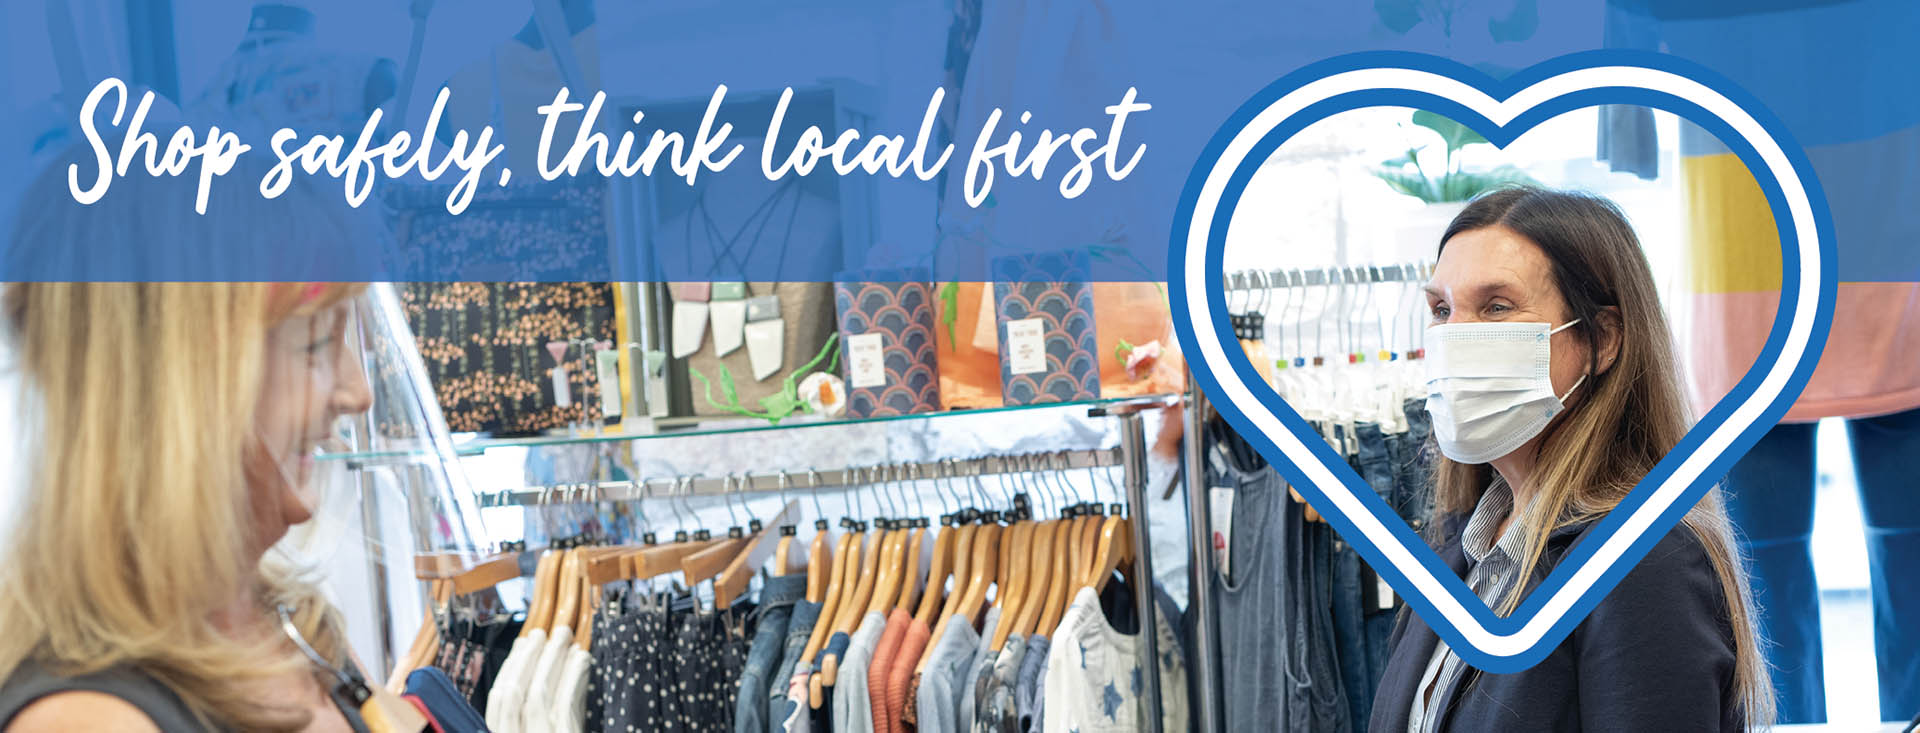 Shop safely, think local first